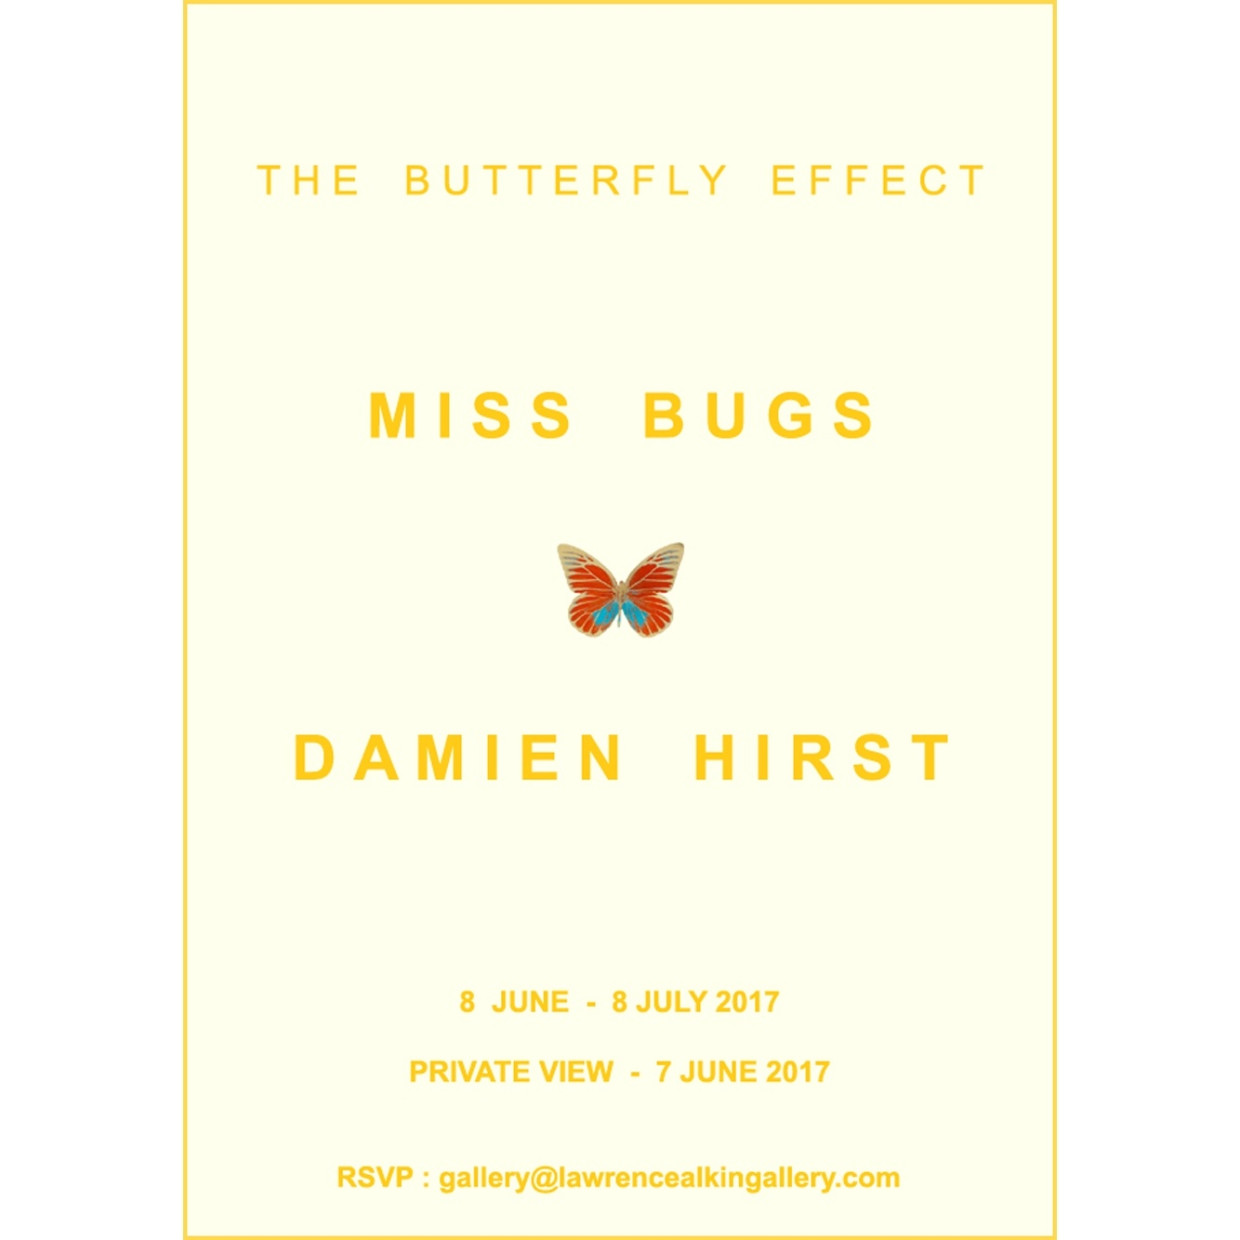 The Butterfly Effect: Miss Bugs x Damien Hirst